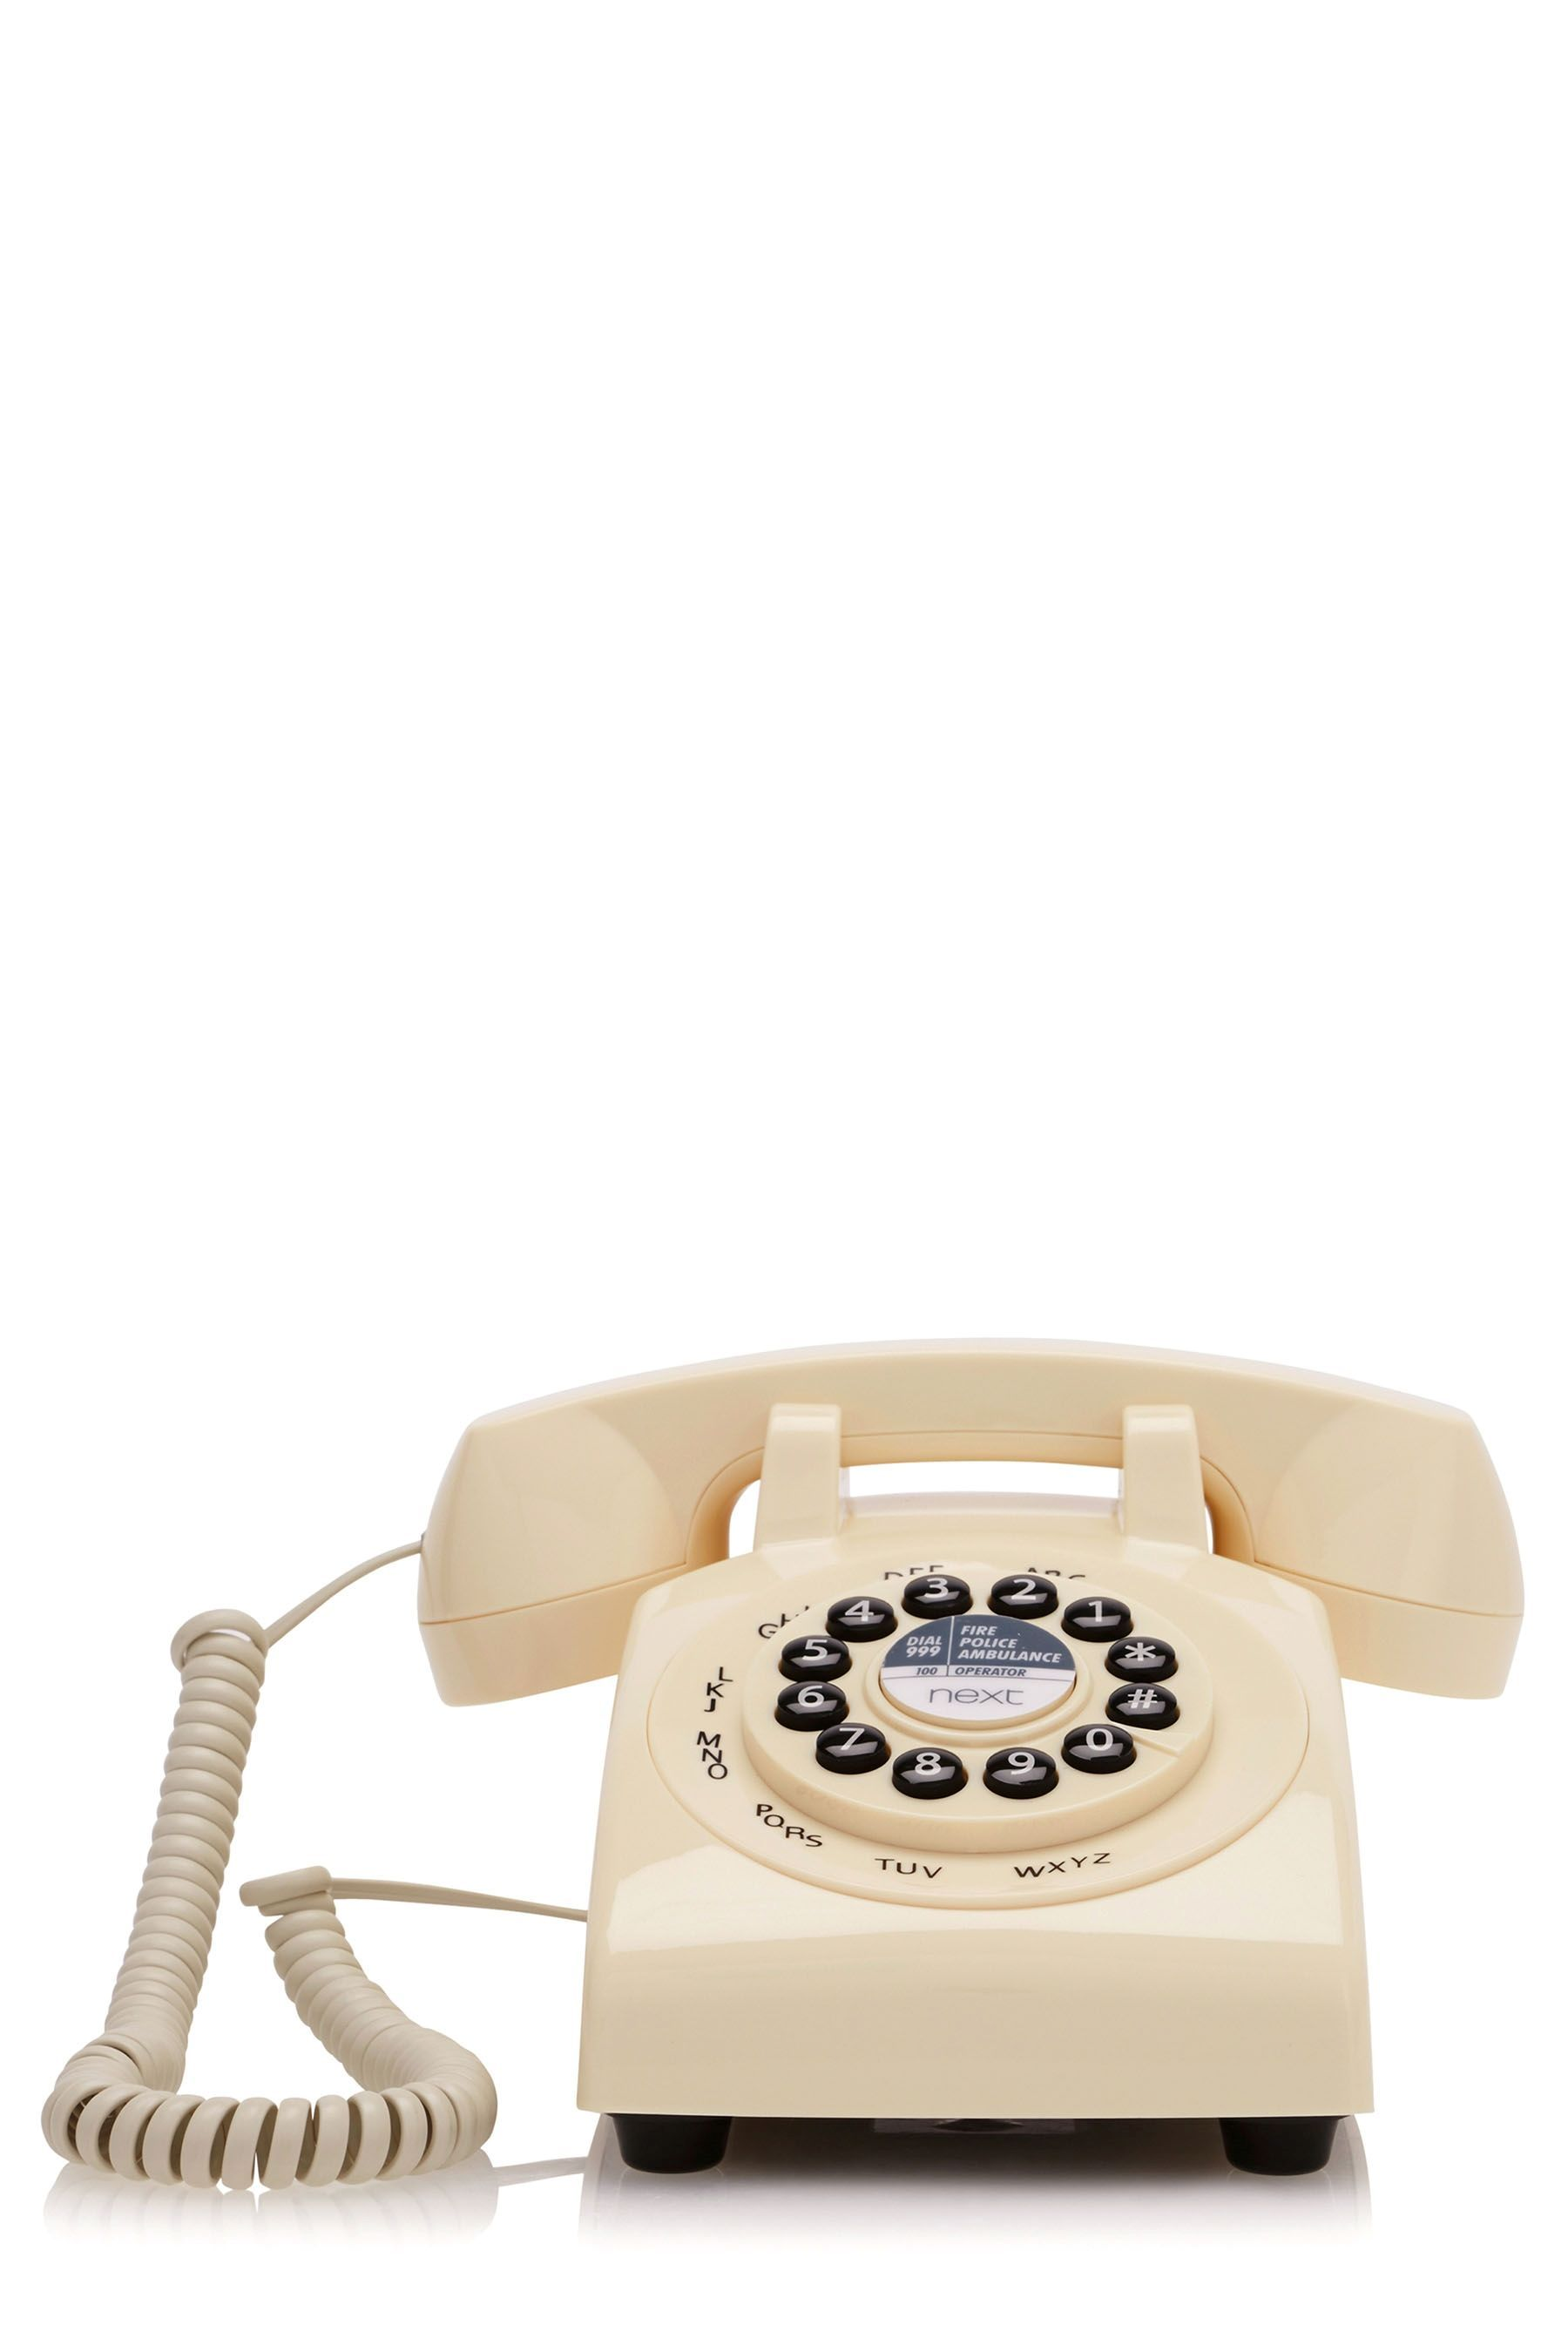 Buy Next Classic Cream Telephone from the Next UK online shop